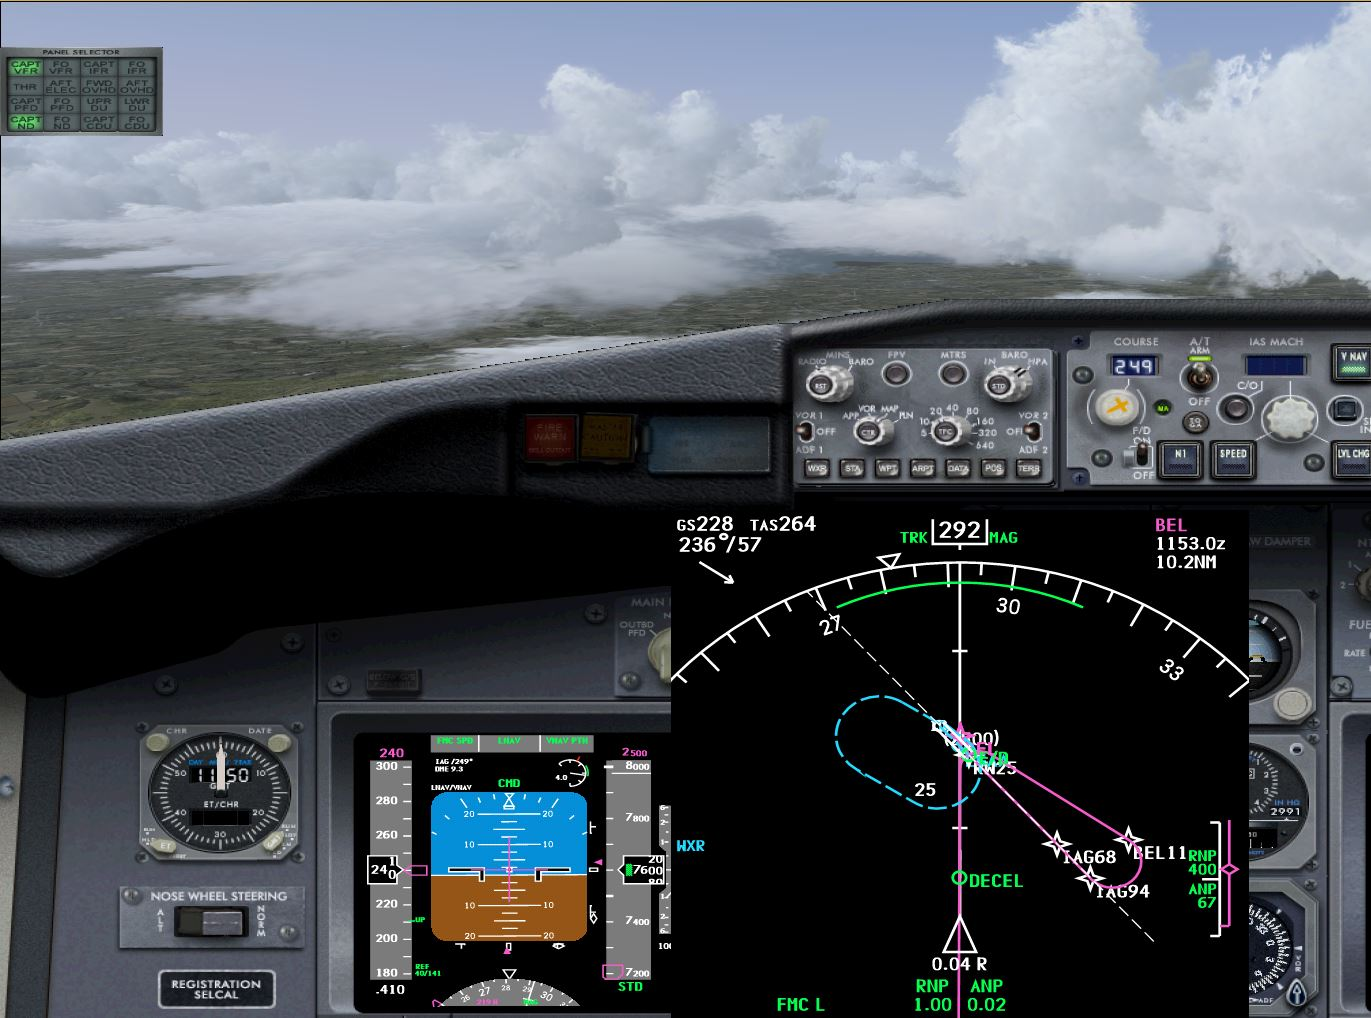 iFly 737NG to feature ASN Radar Integration - iFly Development Team